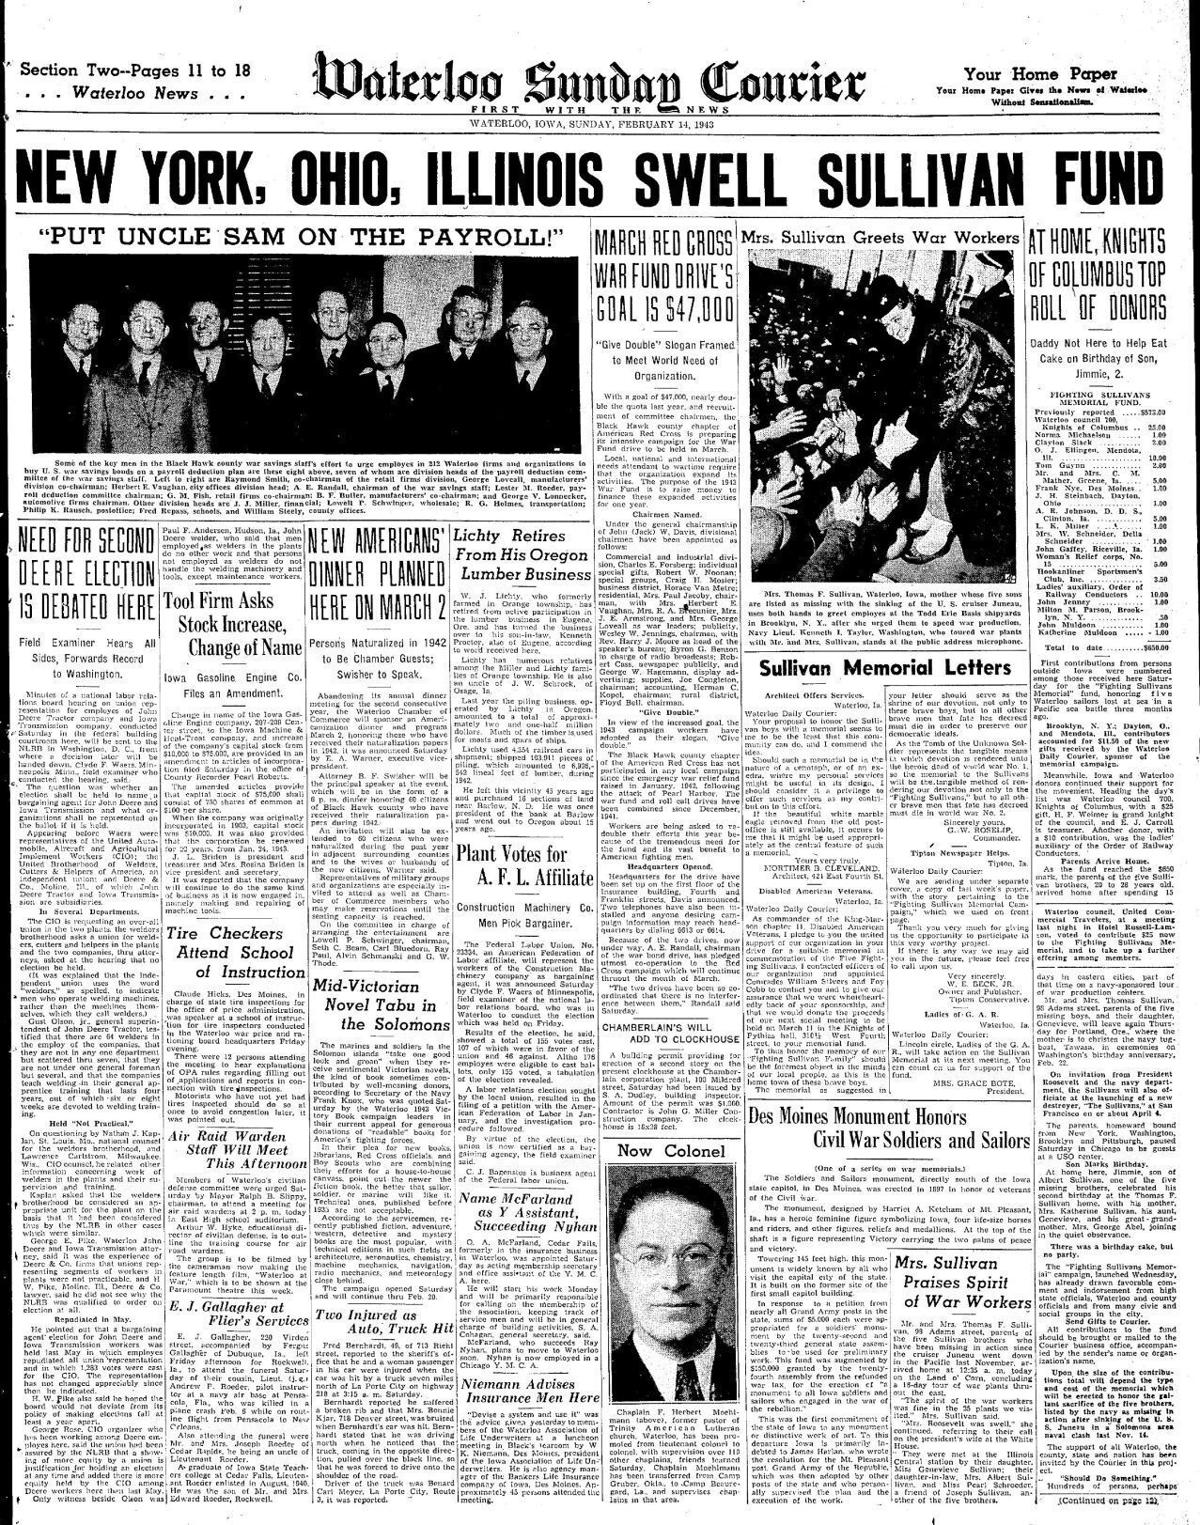 Courier Feb. 14, 1943